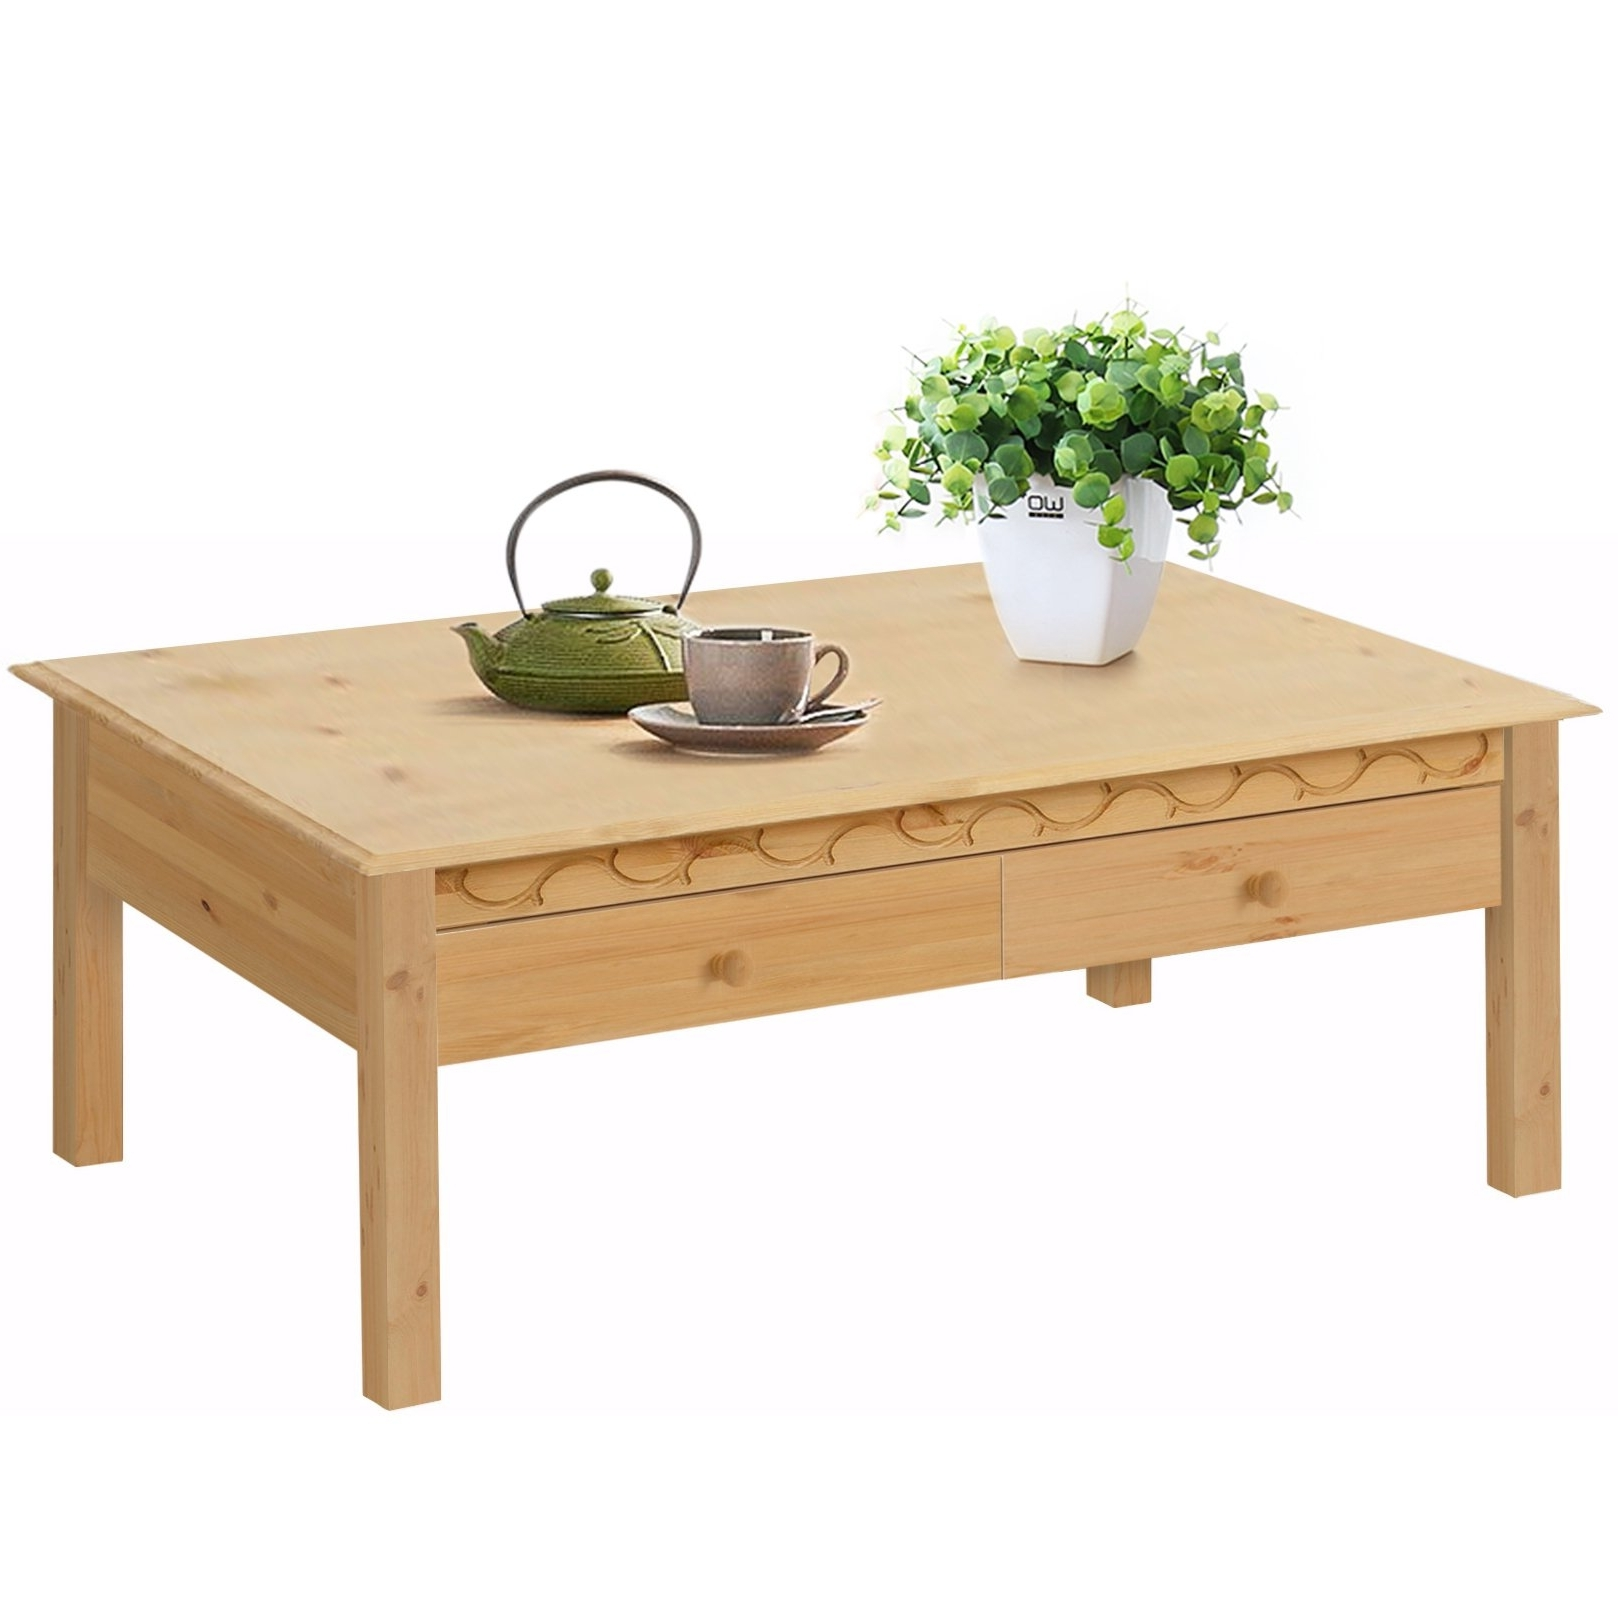 Newest Natural Pine Coffee Tables Intended For Lando 1 Drawer Coffee Table, Solid Pine, Natural – Free Shipping (View 10 of 20)